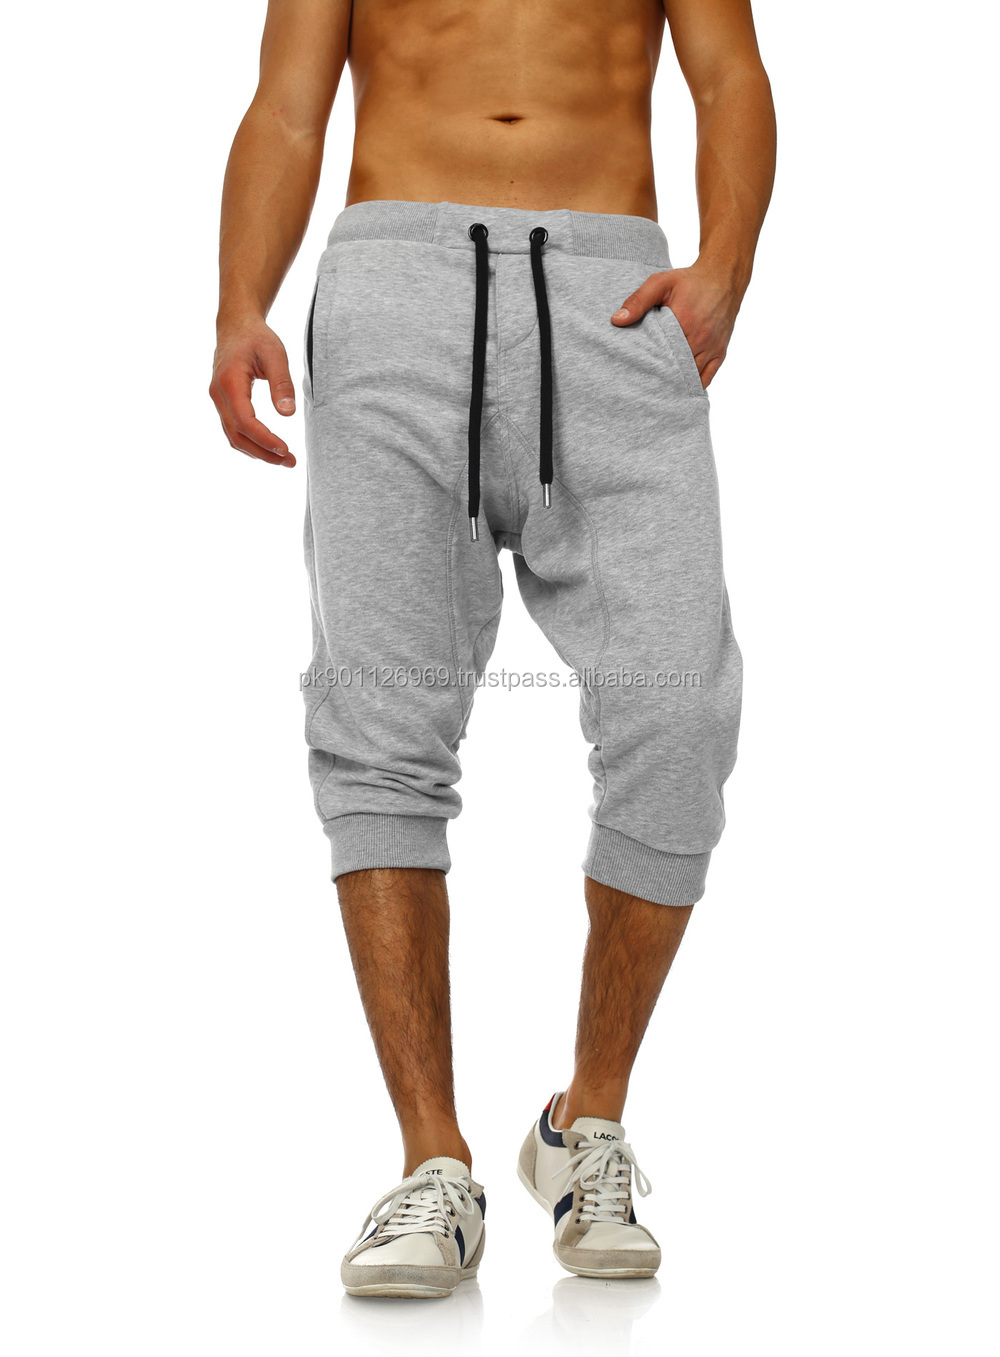 Shop for mens short length sweatpants online at Target. Free shipping on purchases over $35 and save 5% every day with your Target REDcard.